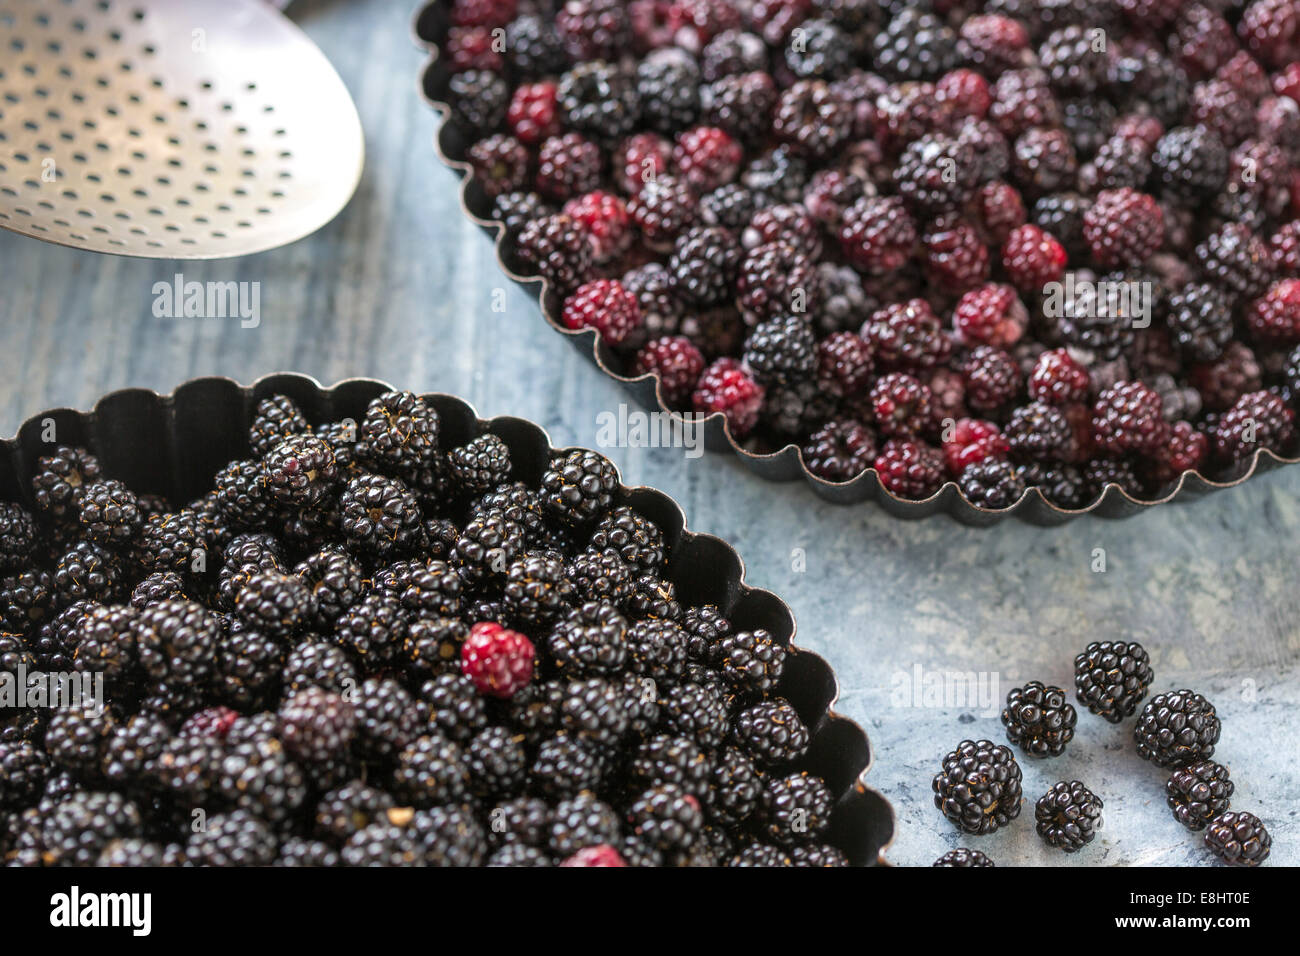 blackberries for home baking a pie or crumble, against green marble, - Stock Image